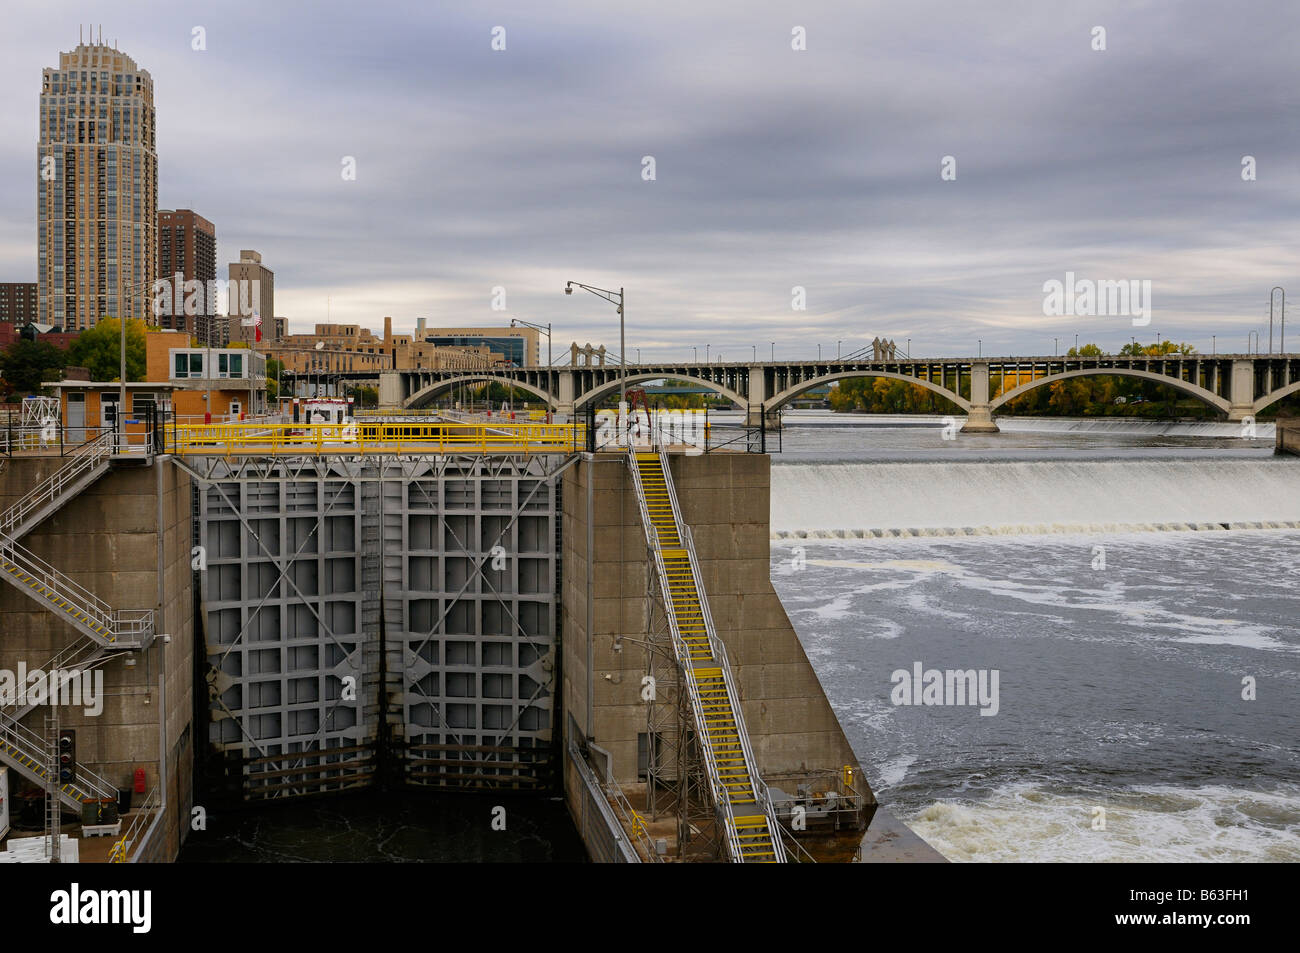 Mississippi river Ford Lock and Dam Number 1 in Minneapolis with St Anthony Falls and Third Avenue bridge - Stock Image